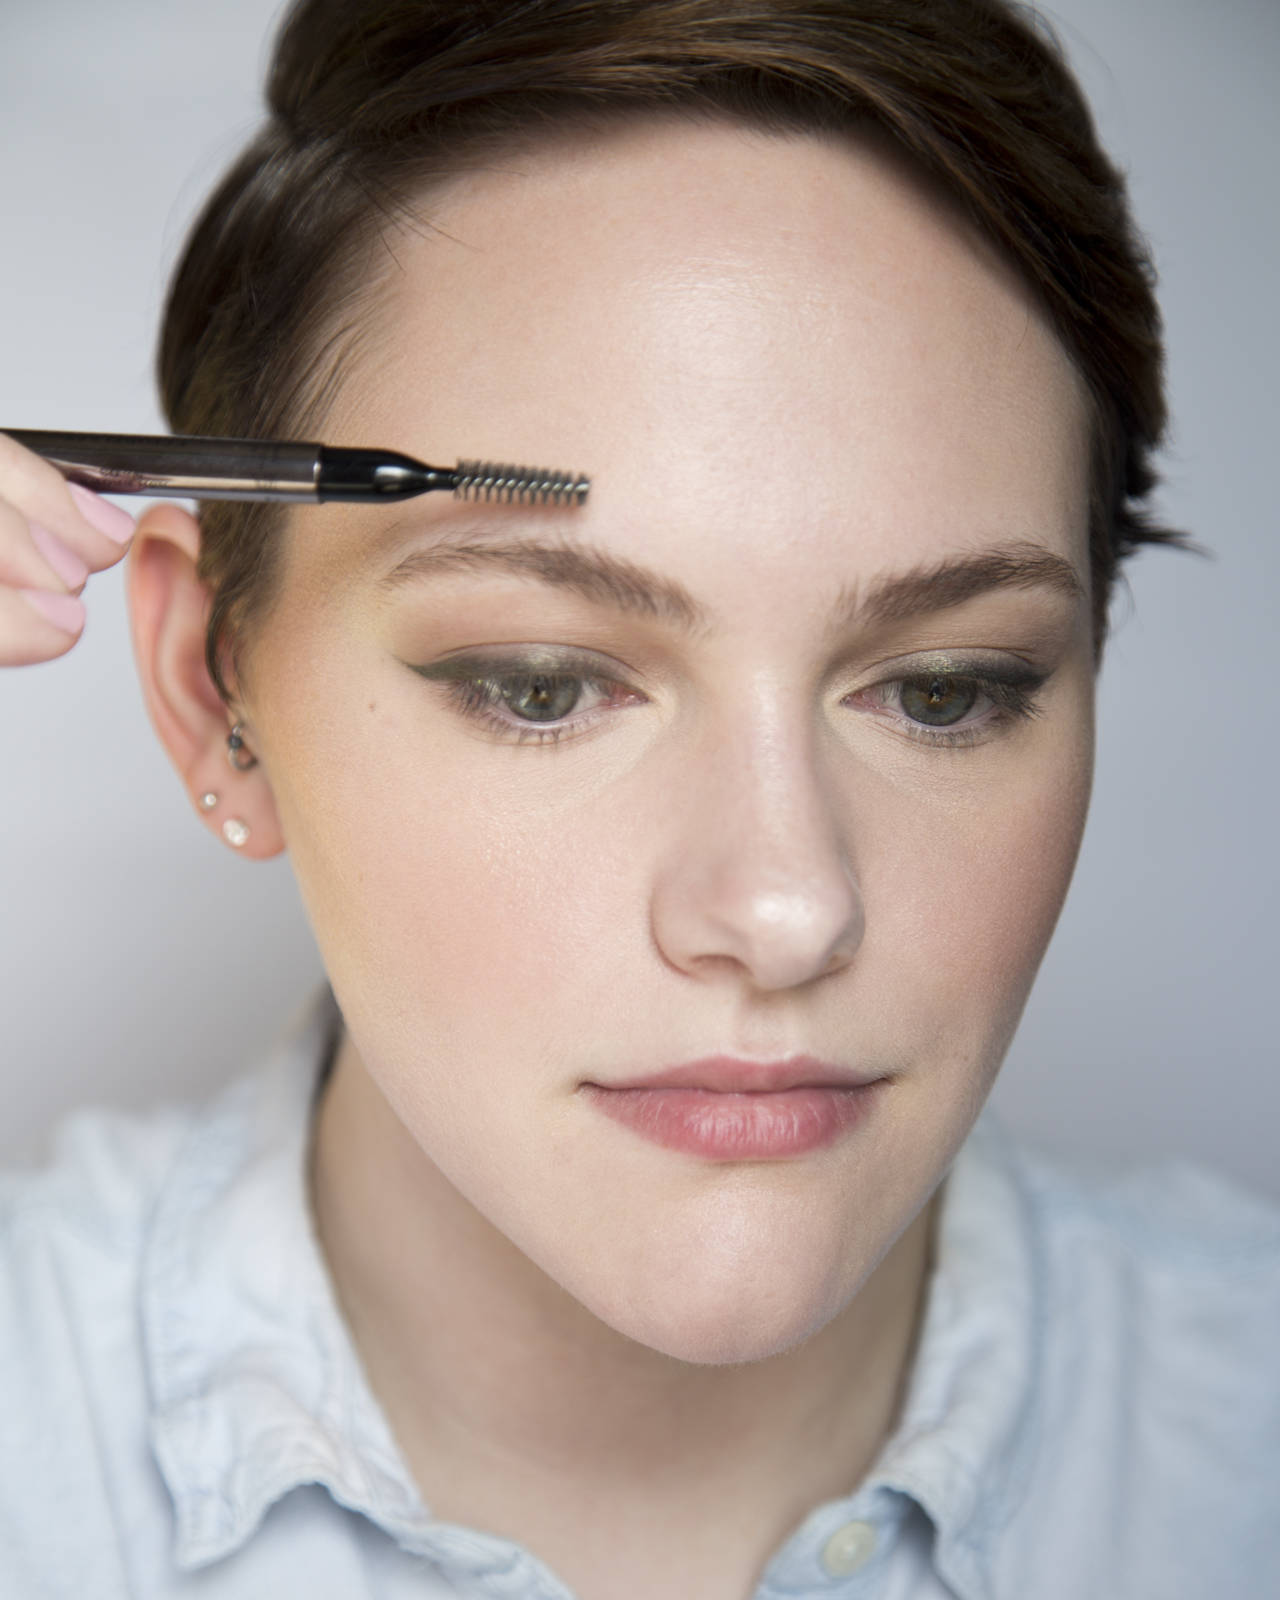 I looked in the mirror after that and knew I had to do brows next to frame the face. Here I am just brushing out my brows with the spoolie end of my Burberry brow pencil.